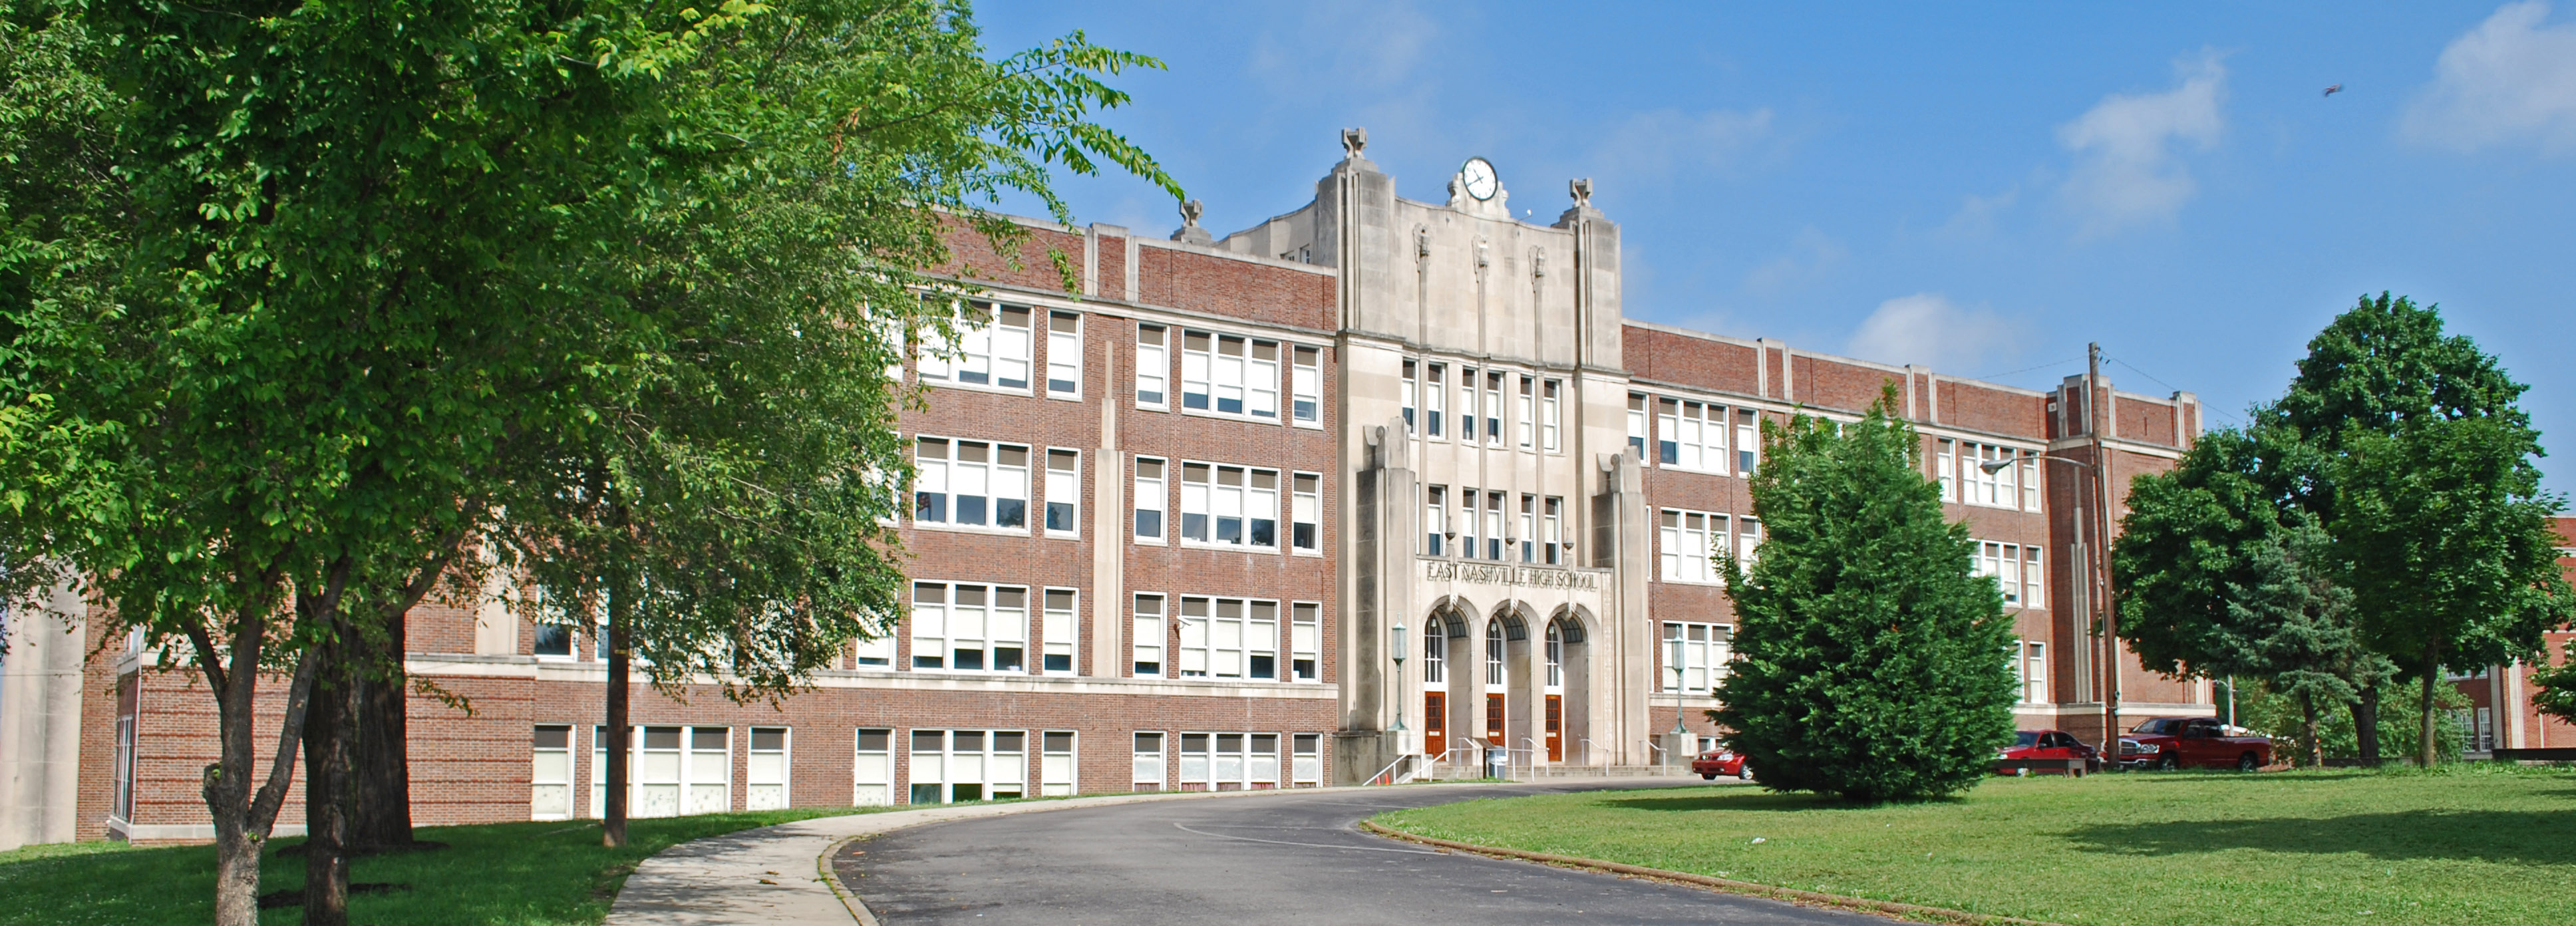 File:EastNashvilleHighSchool.jpg - Wikipedia, the free encyclopedia